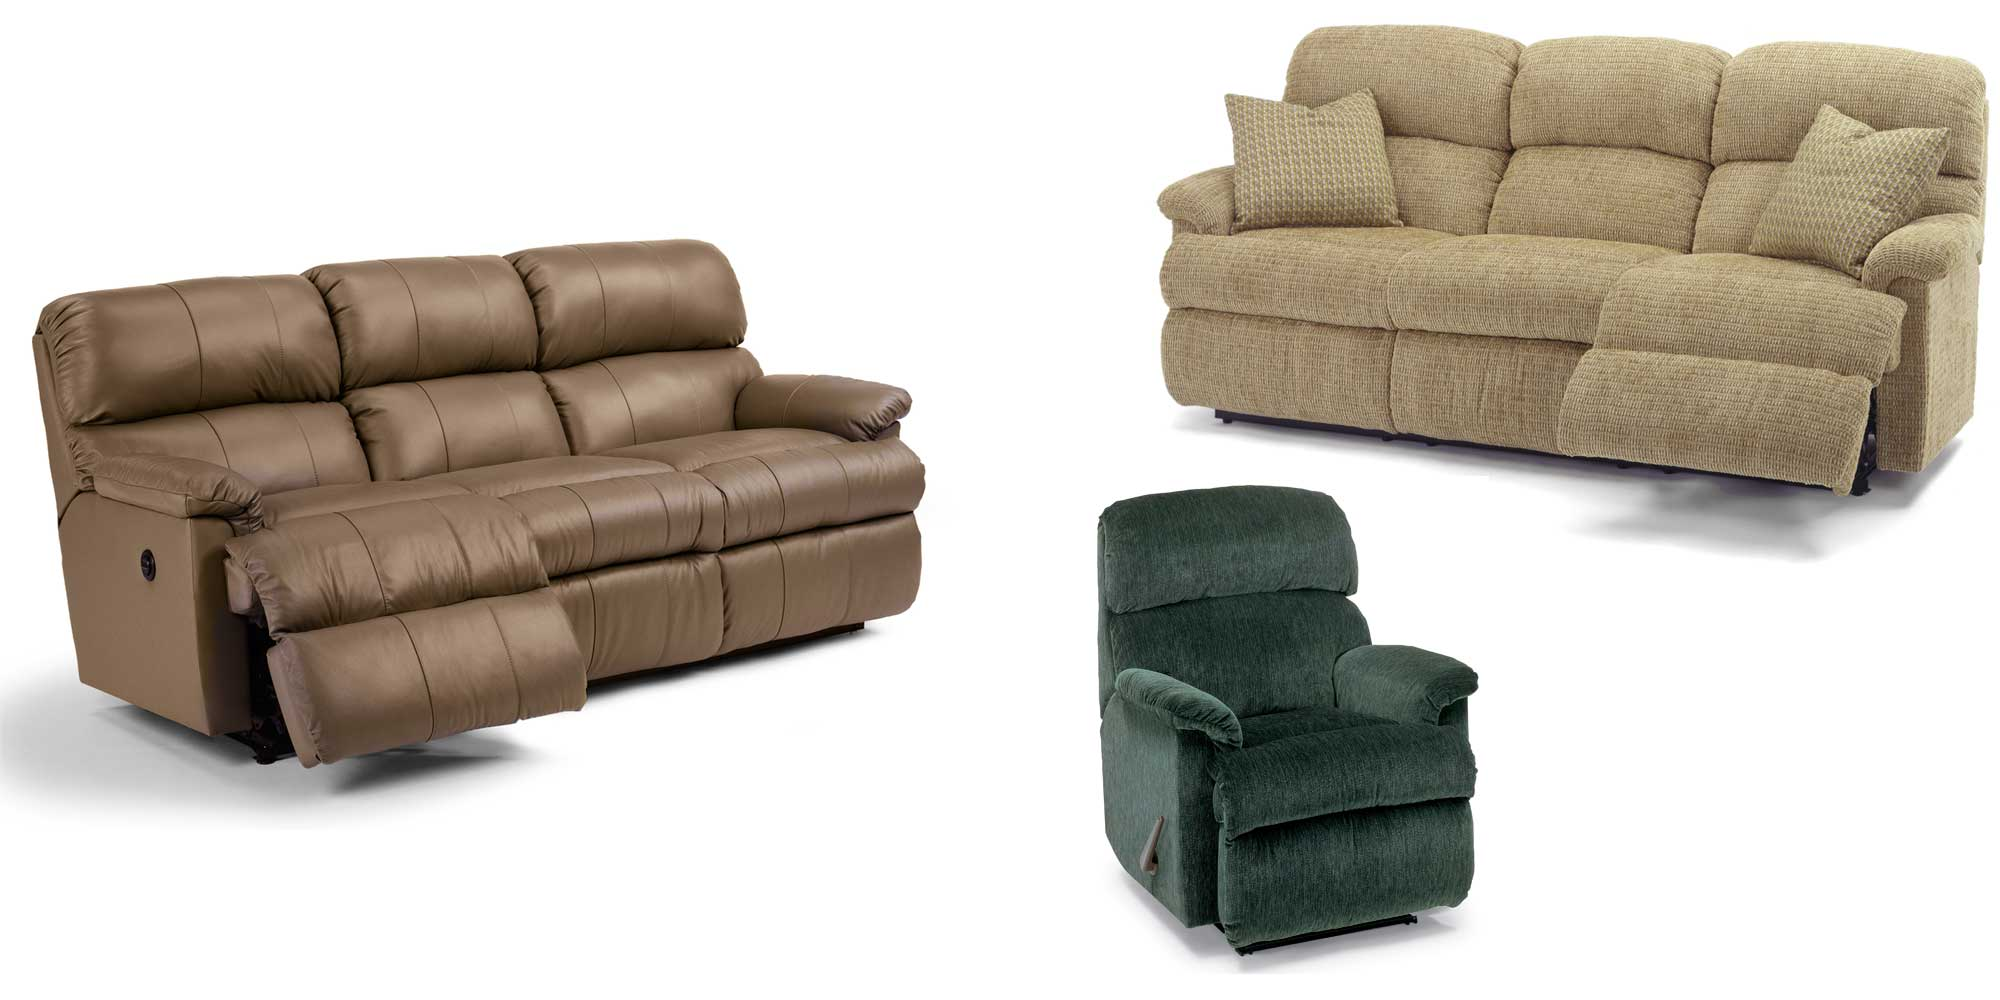 com opens business in irving best furniture chicago park